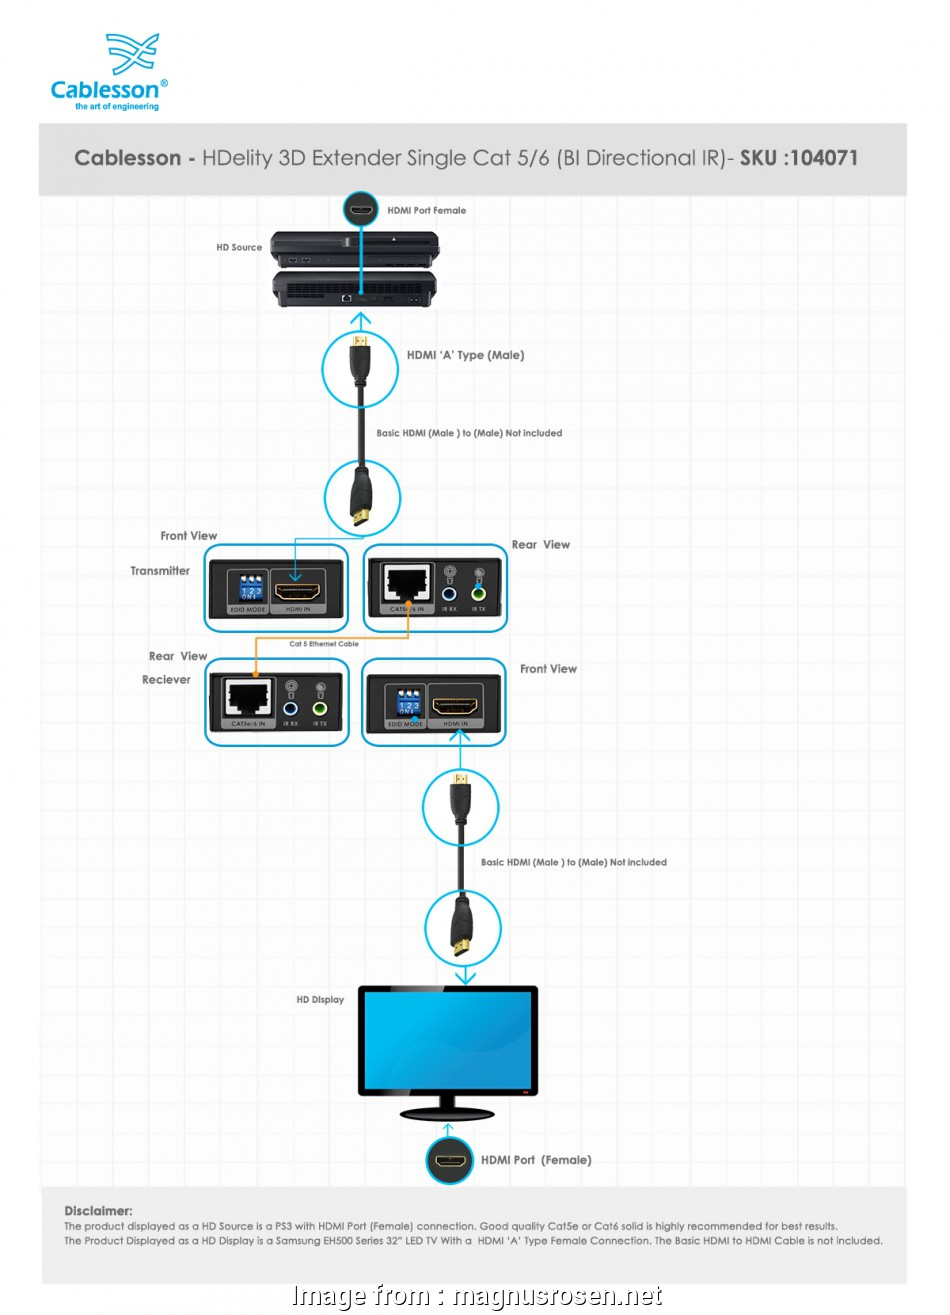 cat 5 wiring diagram video cablesson hdelity hdmi 3d extender single cat5 6  bi directional ir